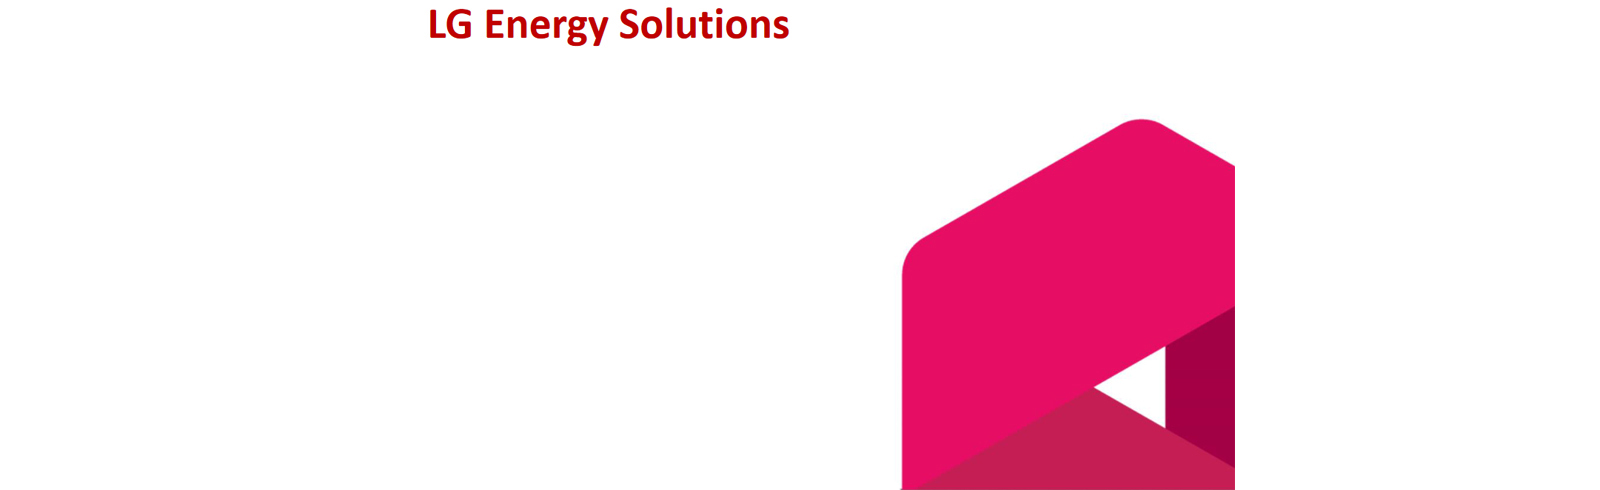 LG Energy Solution dedicated to EV batteries production is launched today, will double its production capacity by 2023